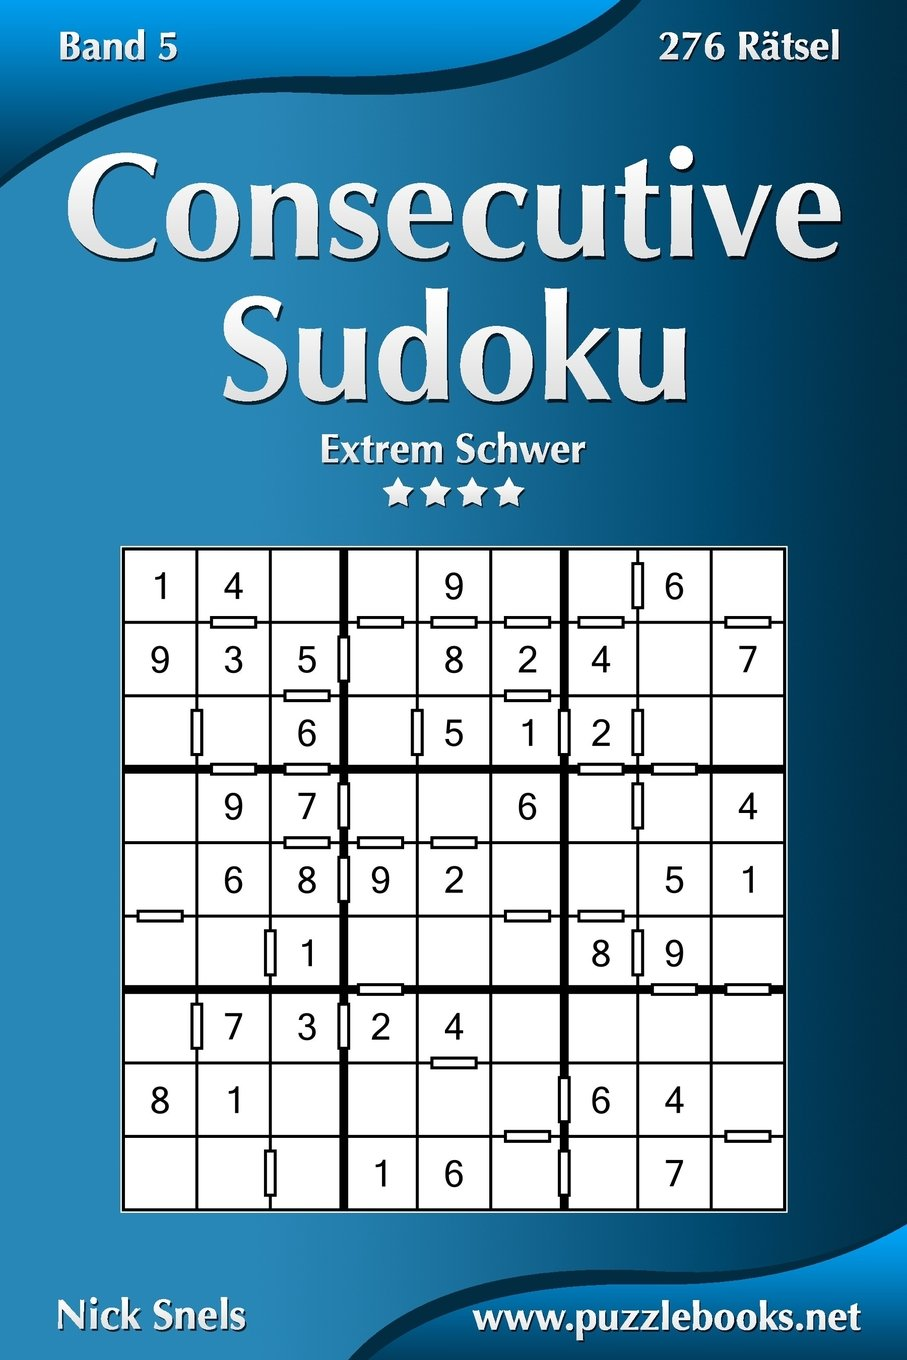 Consecutive Sudoku - Extrem Schwer - Band 5 - 276 Rätsel (Volume 5 ...